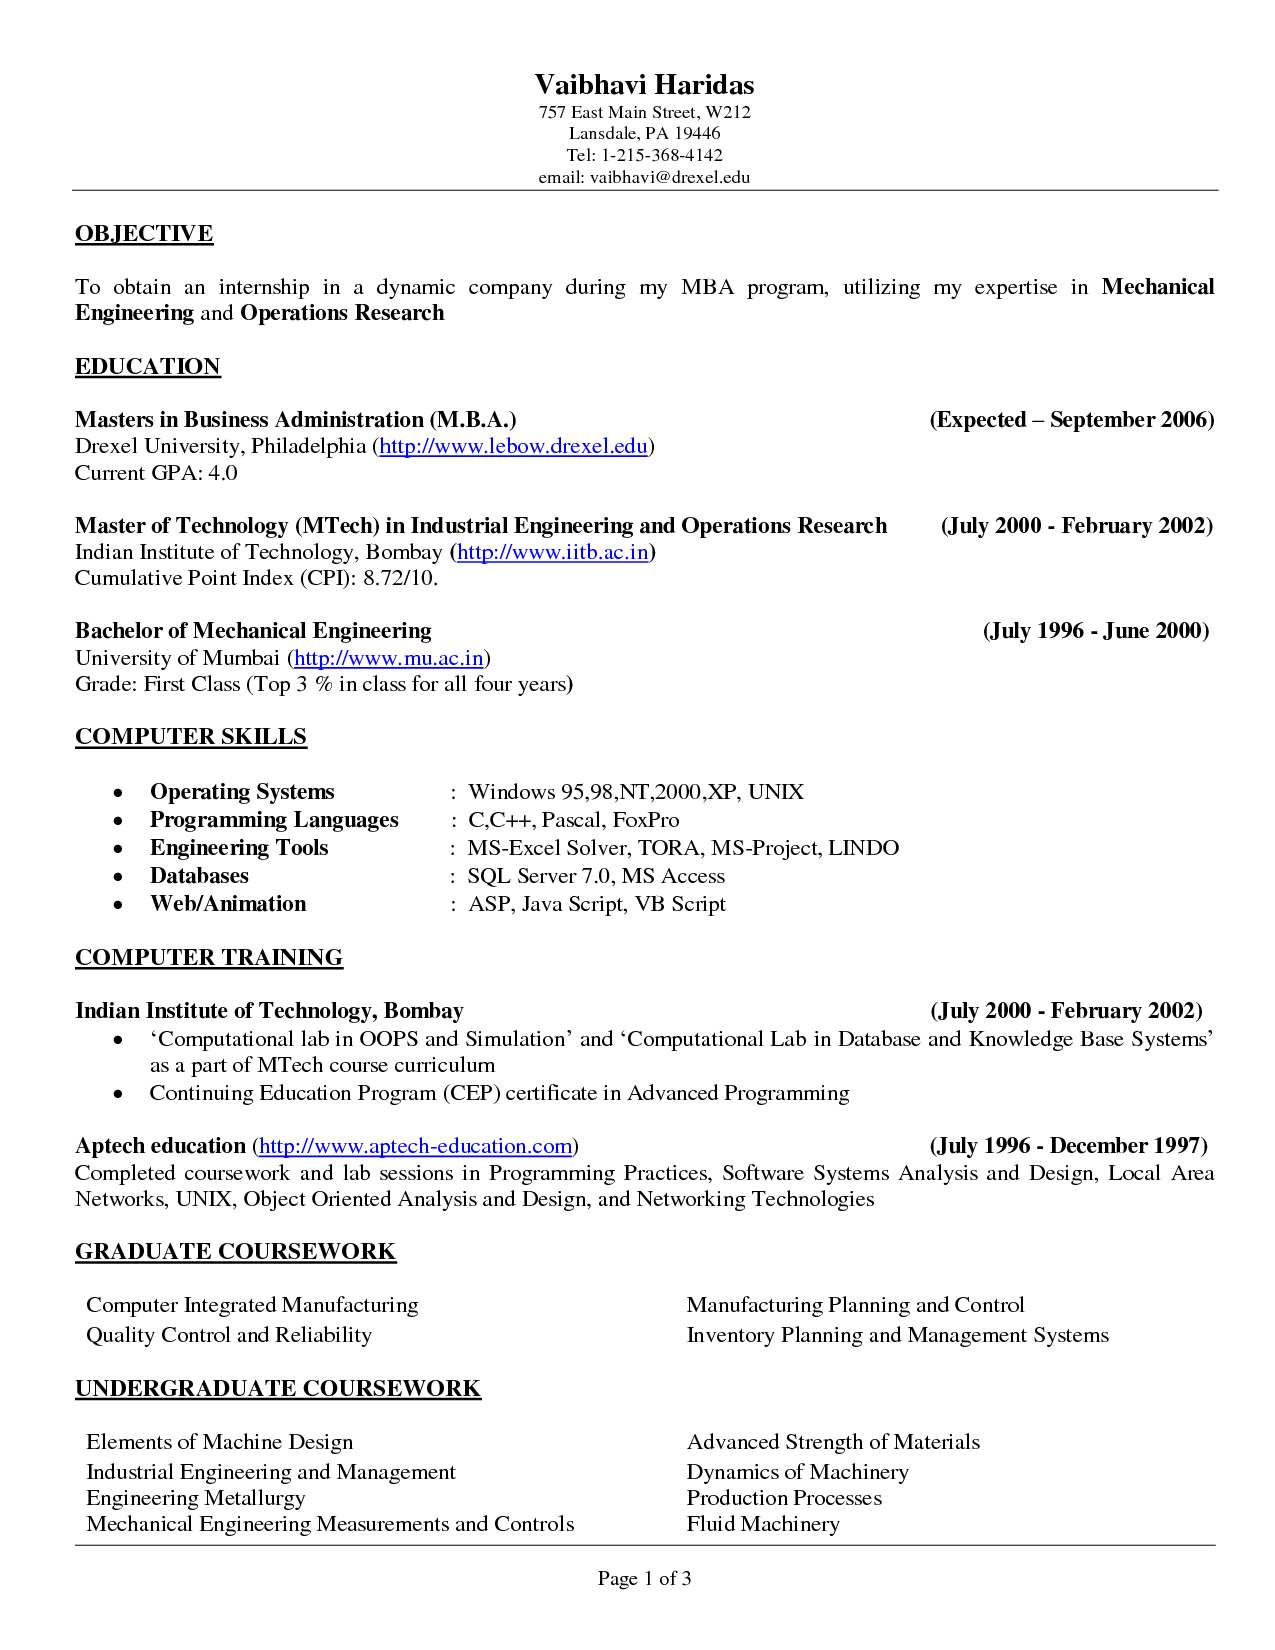 resume objective example best templateresume objective